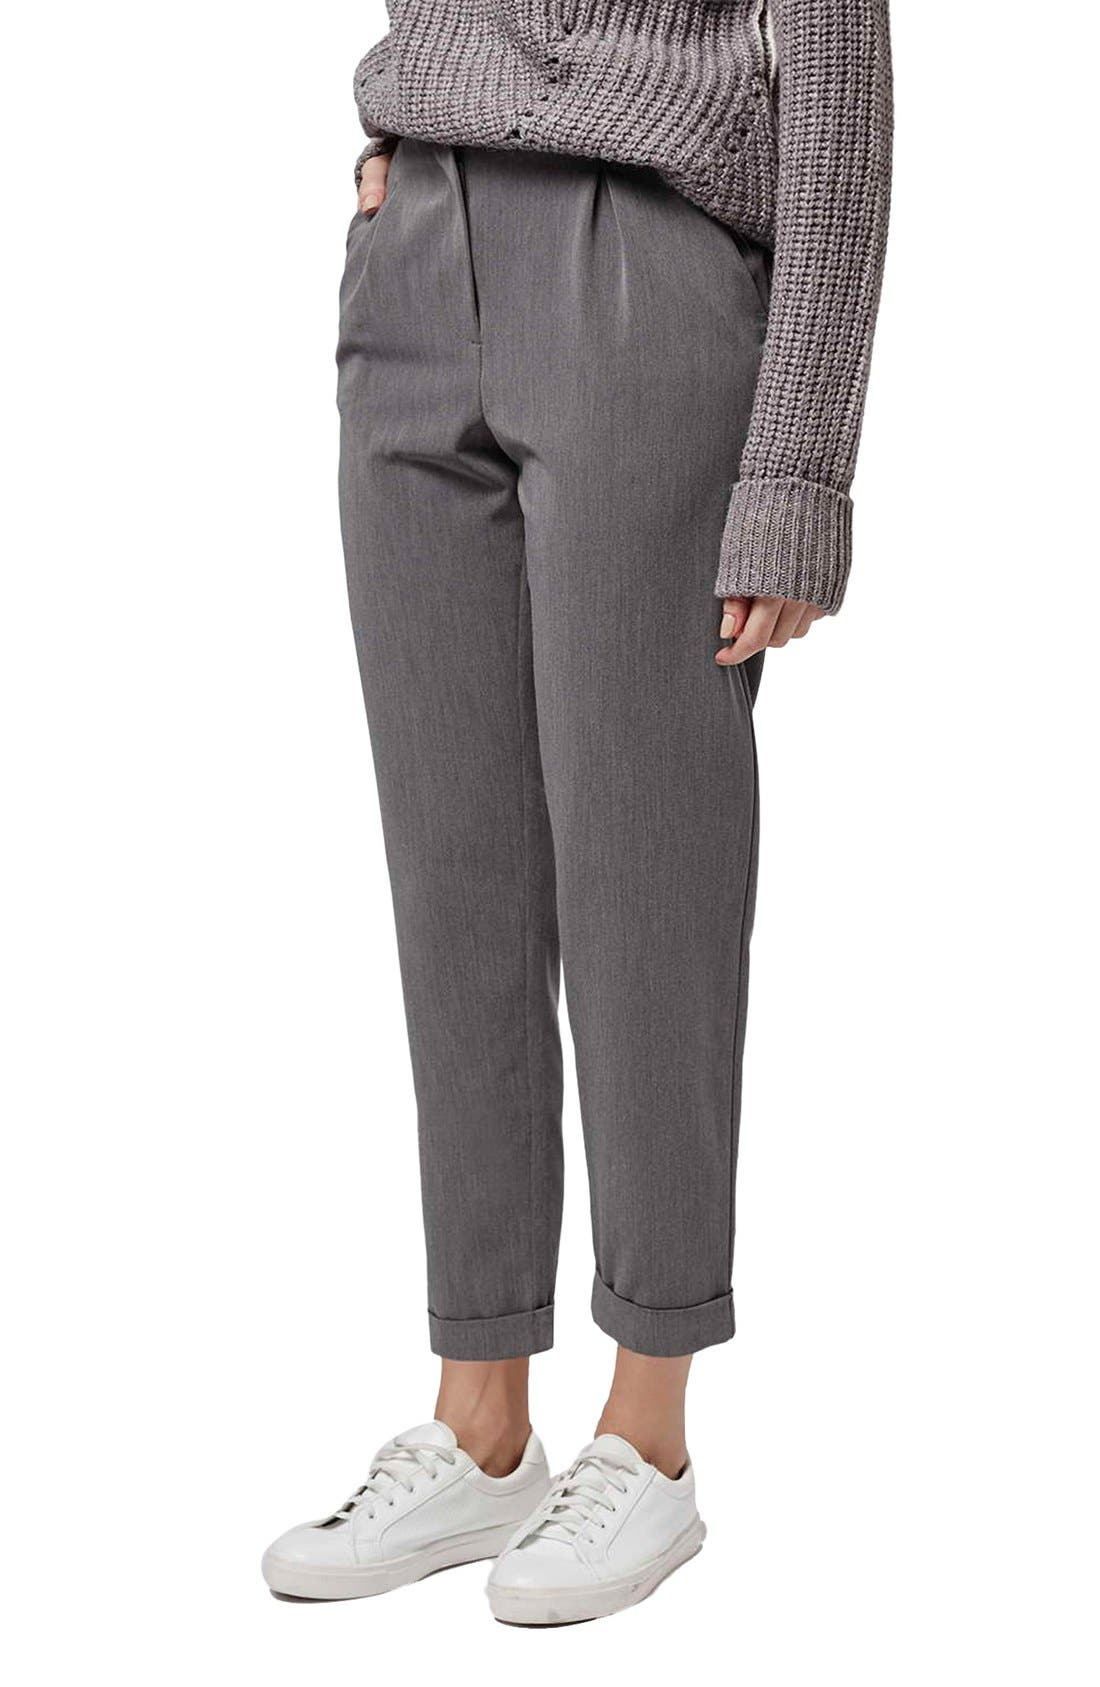 Alternate Image 1 Selected - Topshop Notch Back Tapered Trousers (Petite)